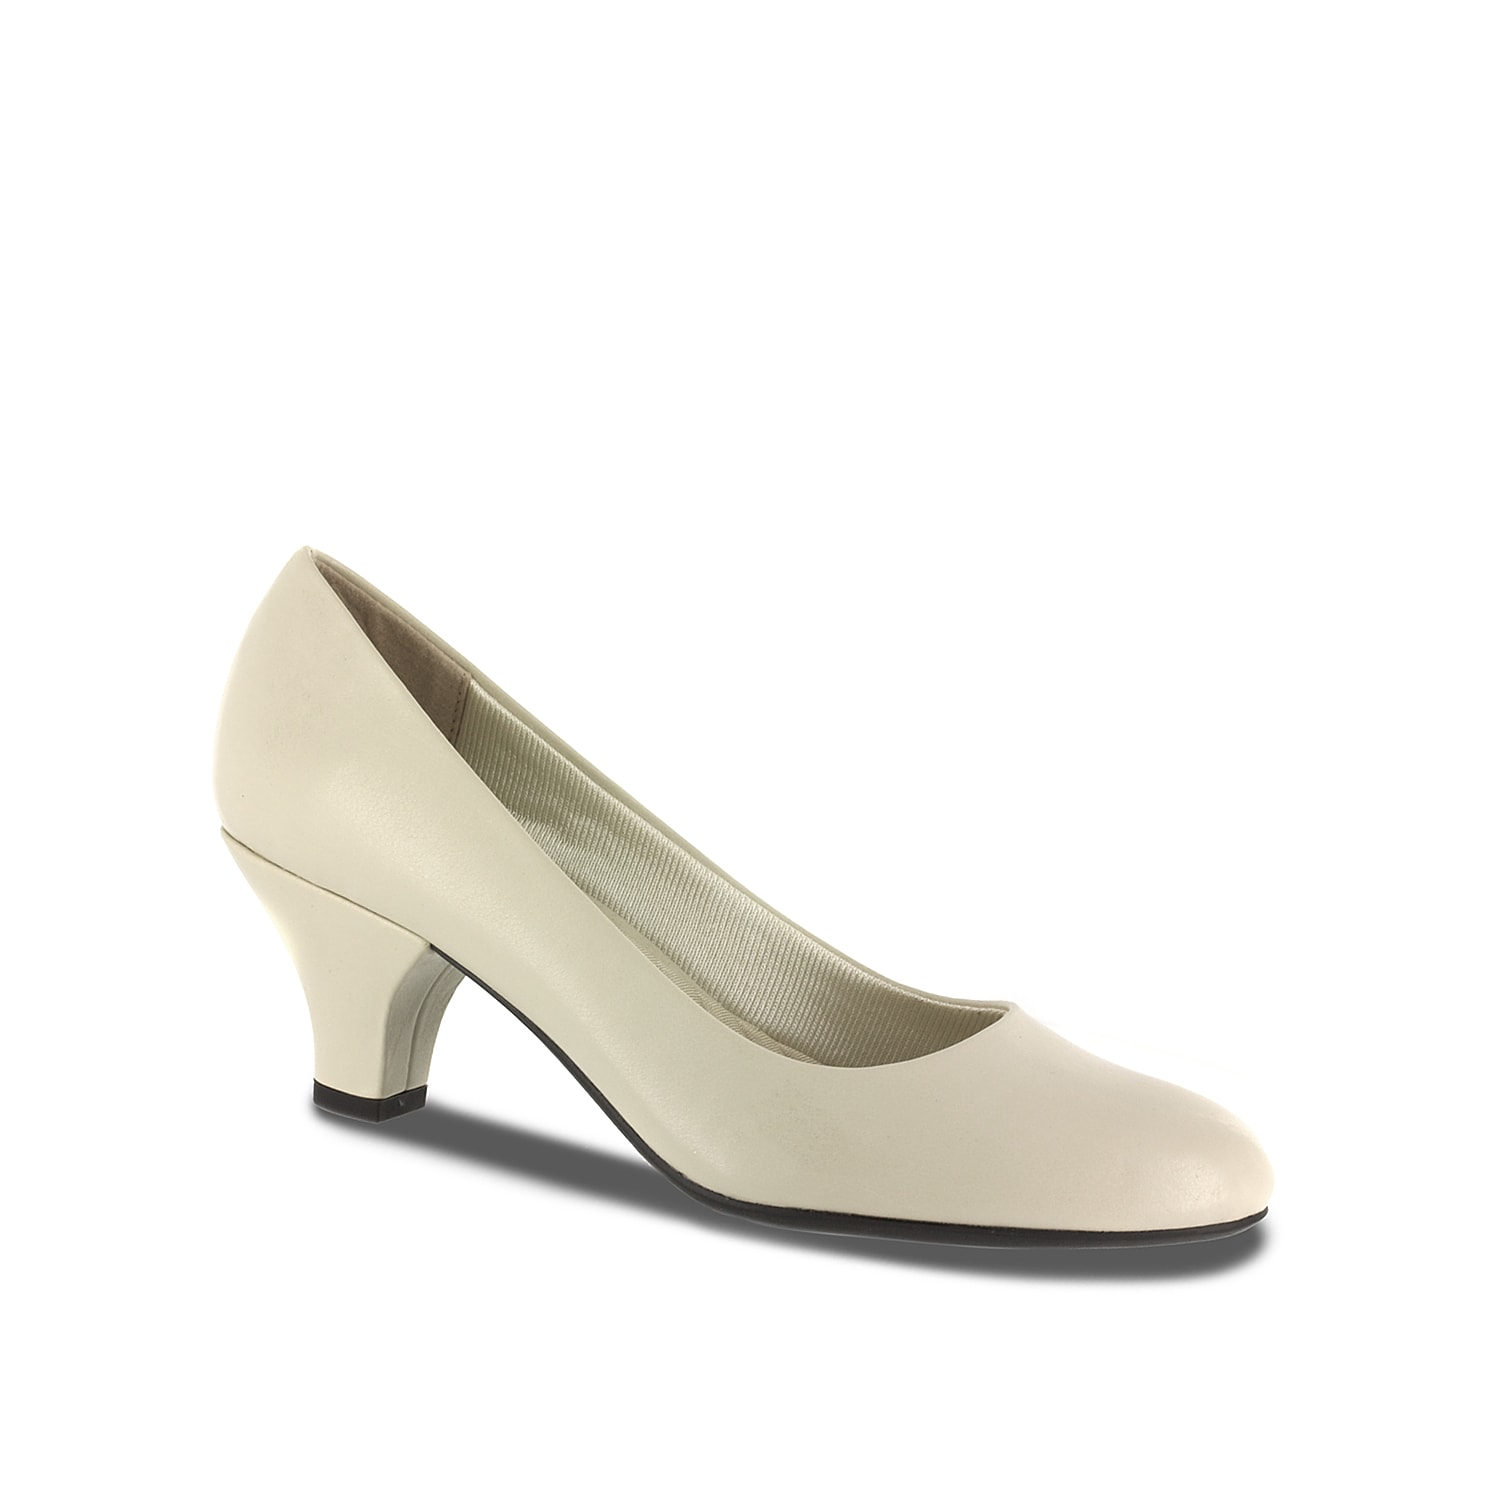 The Fabulous by Easy Street is a classically styled pump that is a must-have in your year-round wardrobe. This versatile dress shoe features a soft rounded toe, a mid-sized heel, and super flexible outsole.